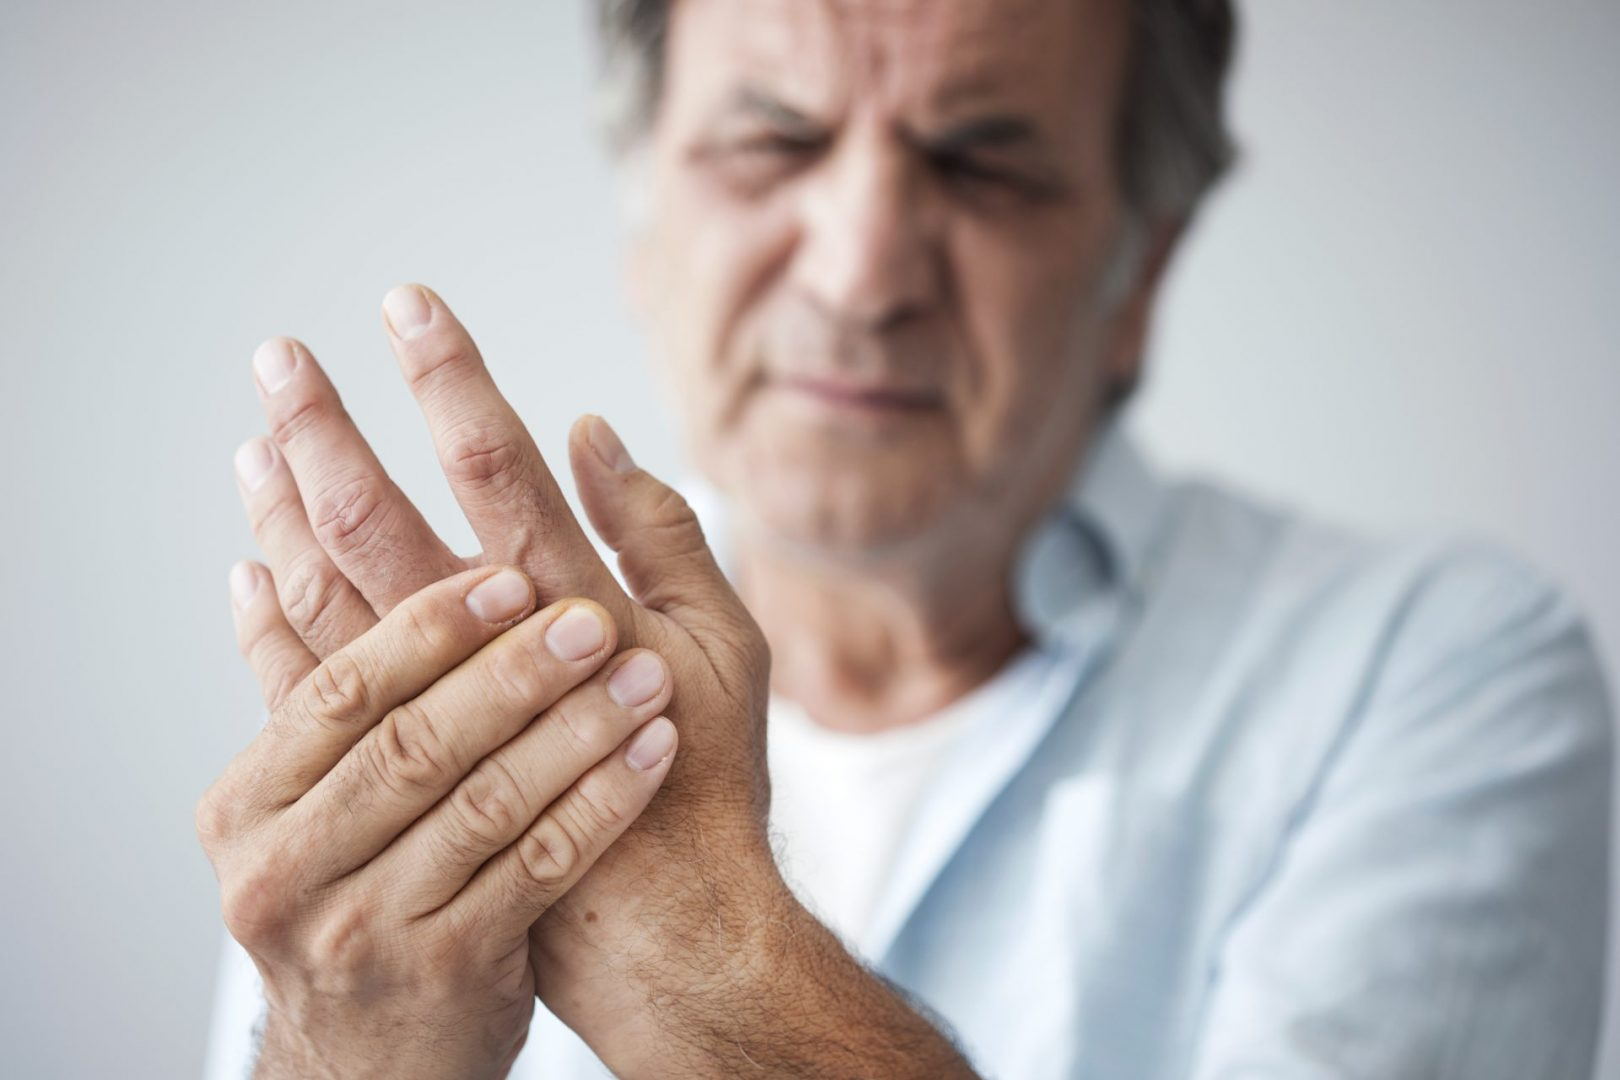 3 Common Causes of Chronic Pain Our Doctors Treat